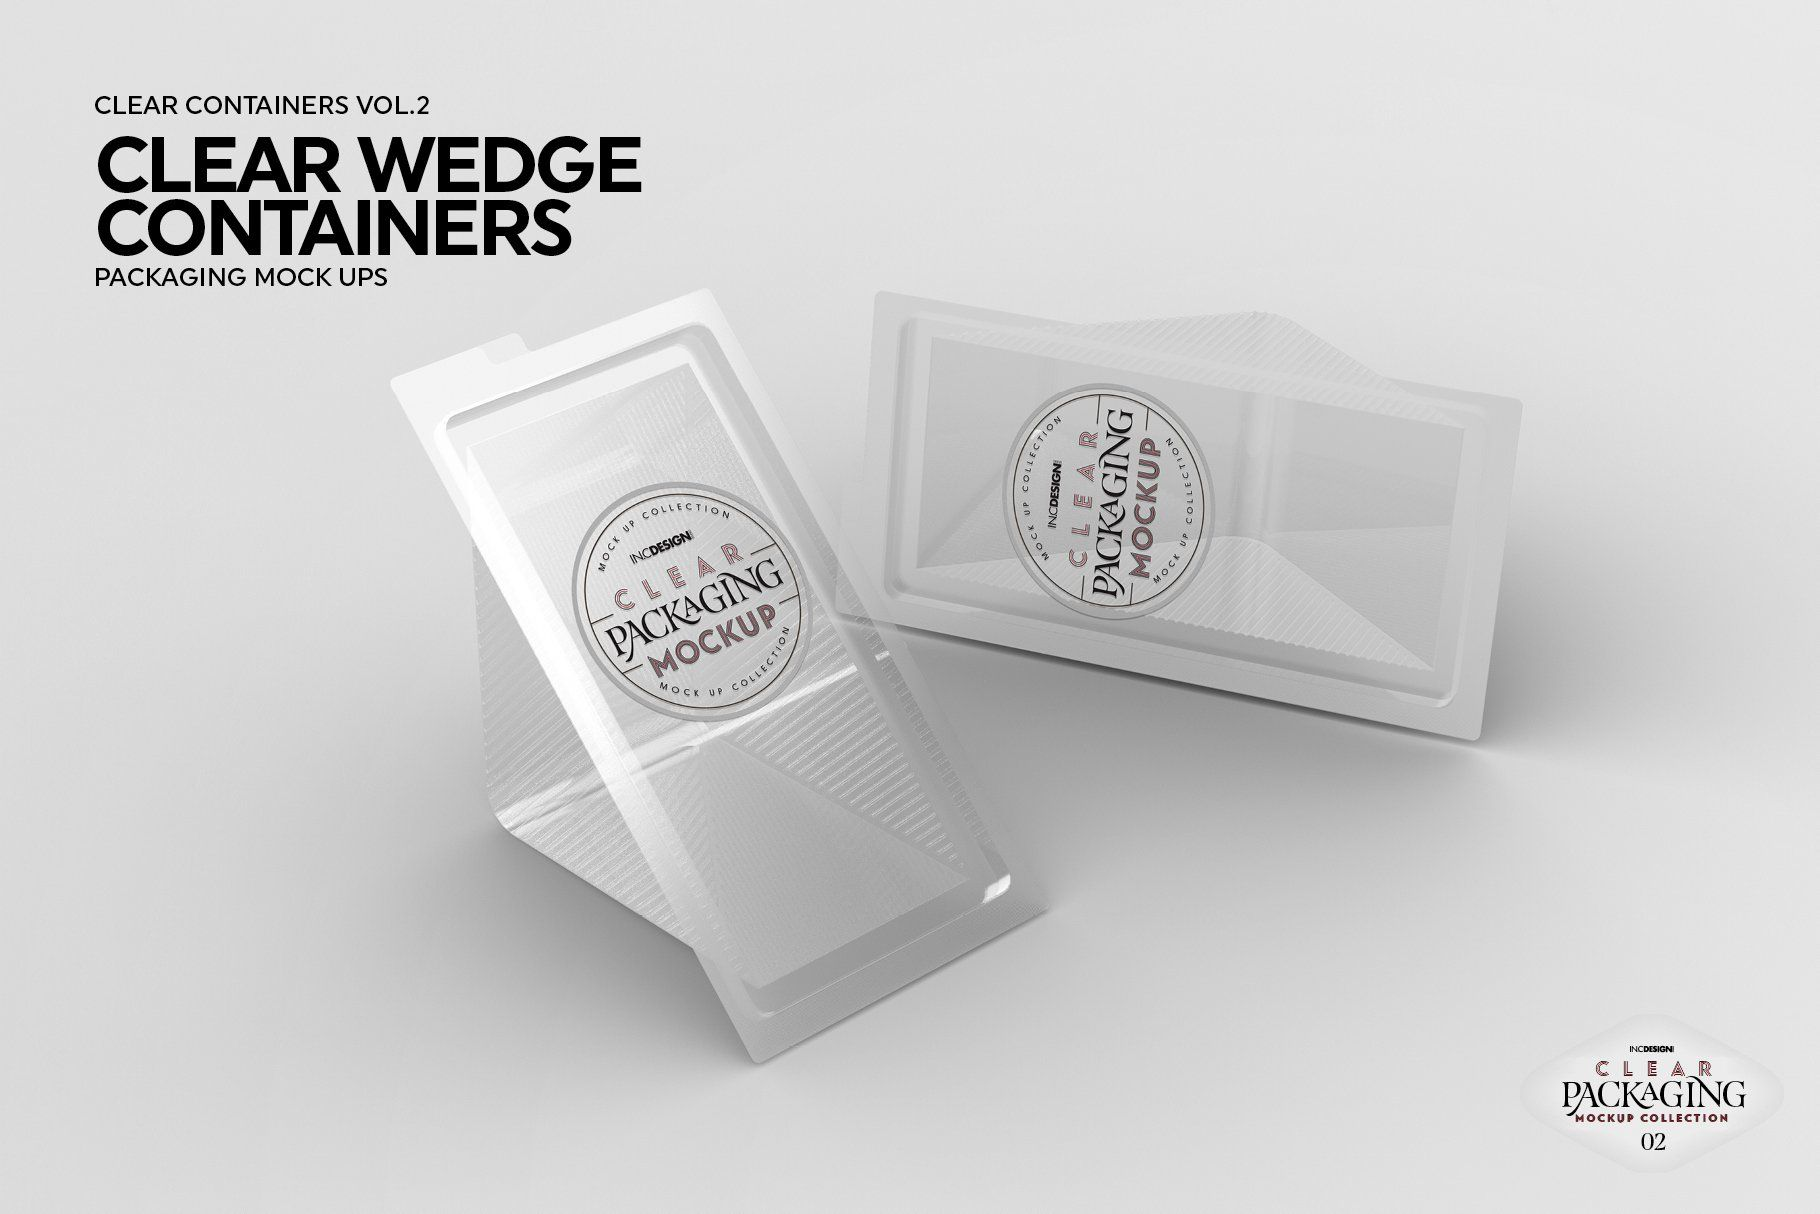 02 Clear Container Packaging Mockups Packaging Mockup Clear